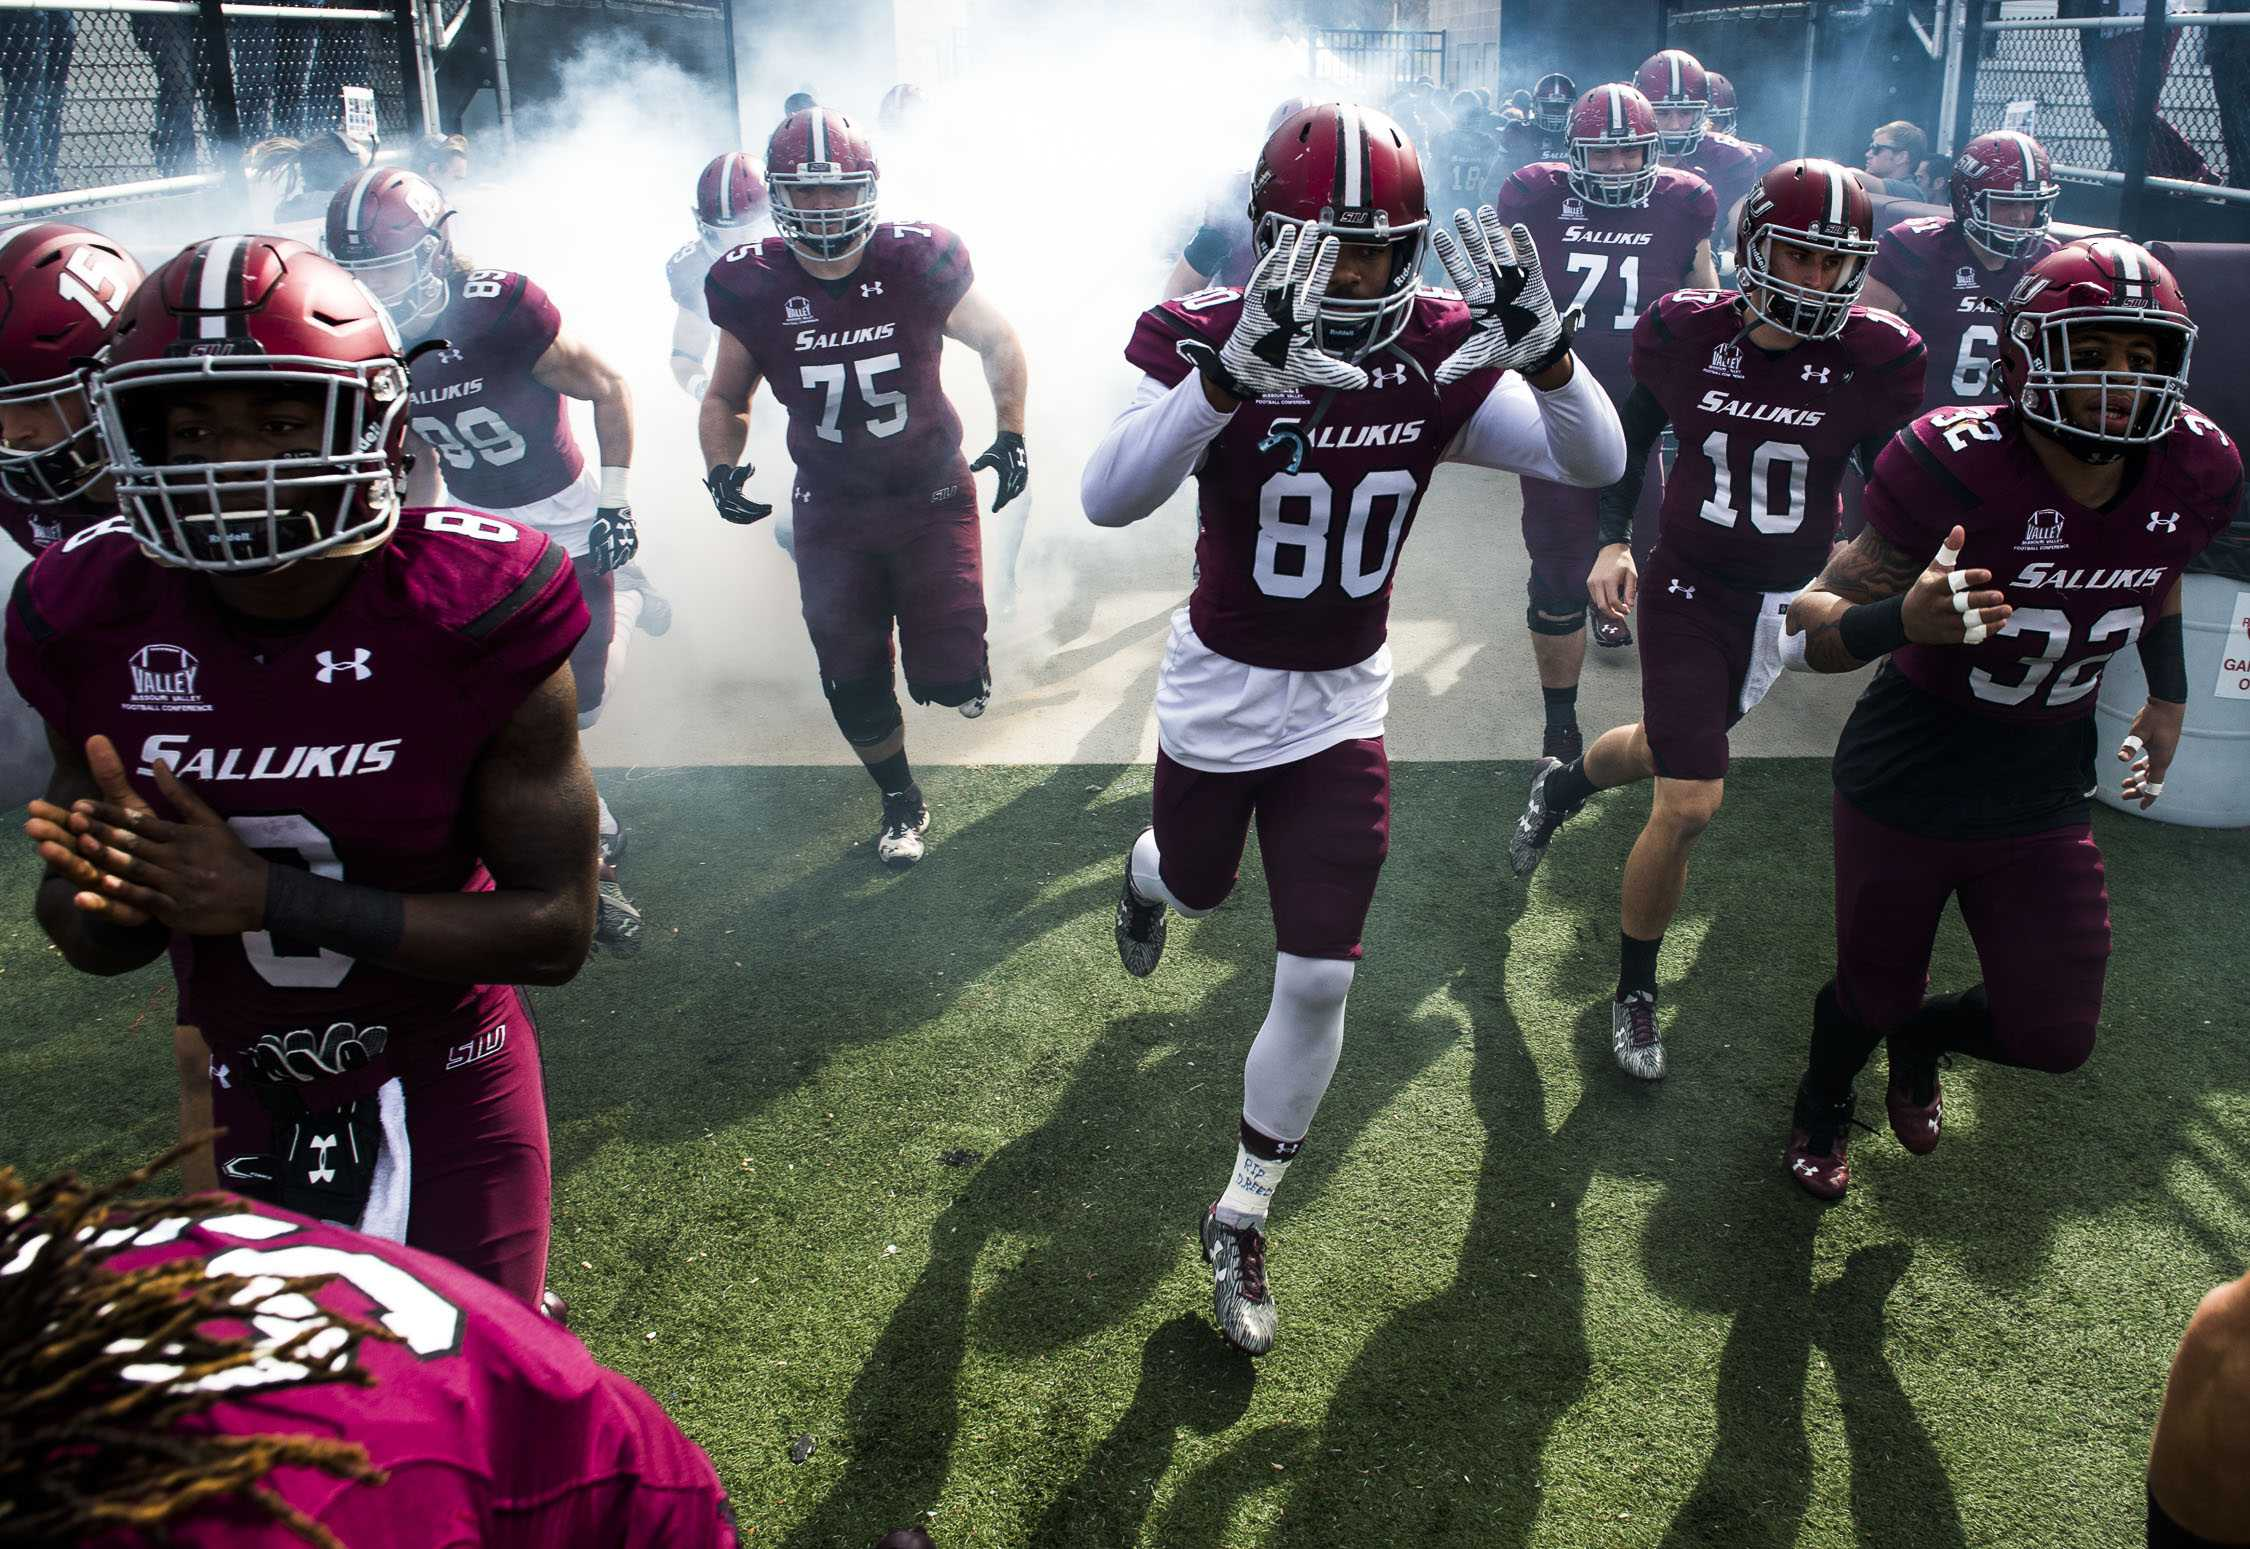 Players burst onto the field Saturday, Nov. 5, 2016, prior to the Salukis' 35-28 win against the University of South Dakota Coyotes at Saluki Stadium. (Ryan Michalesko | @photosbylesko)